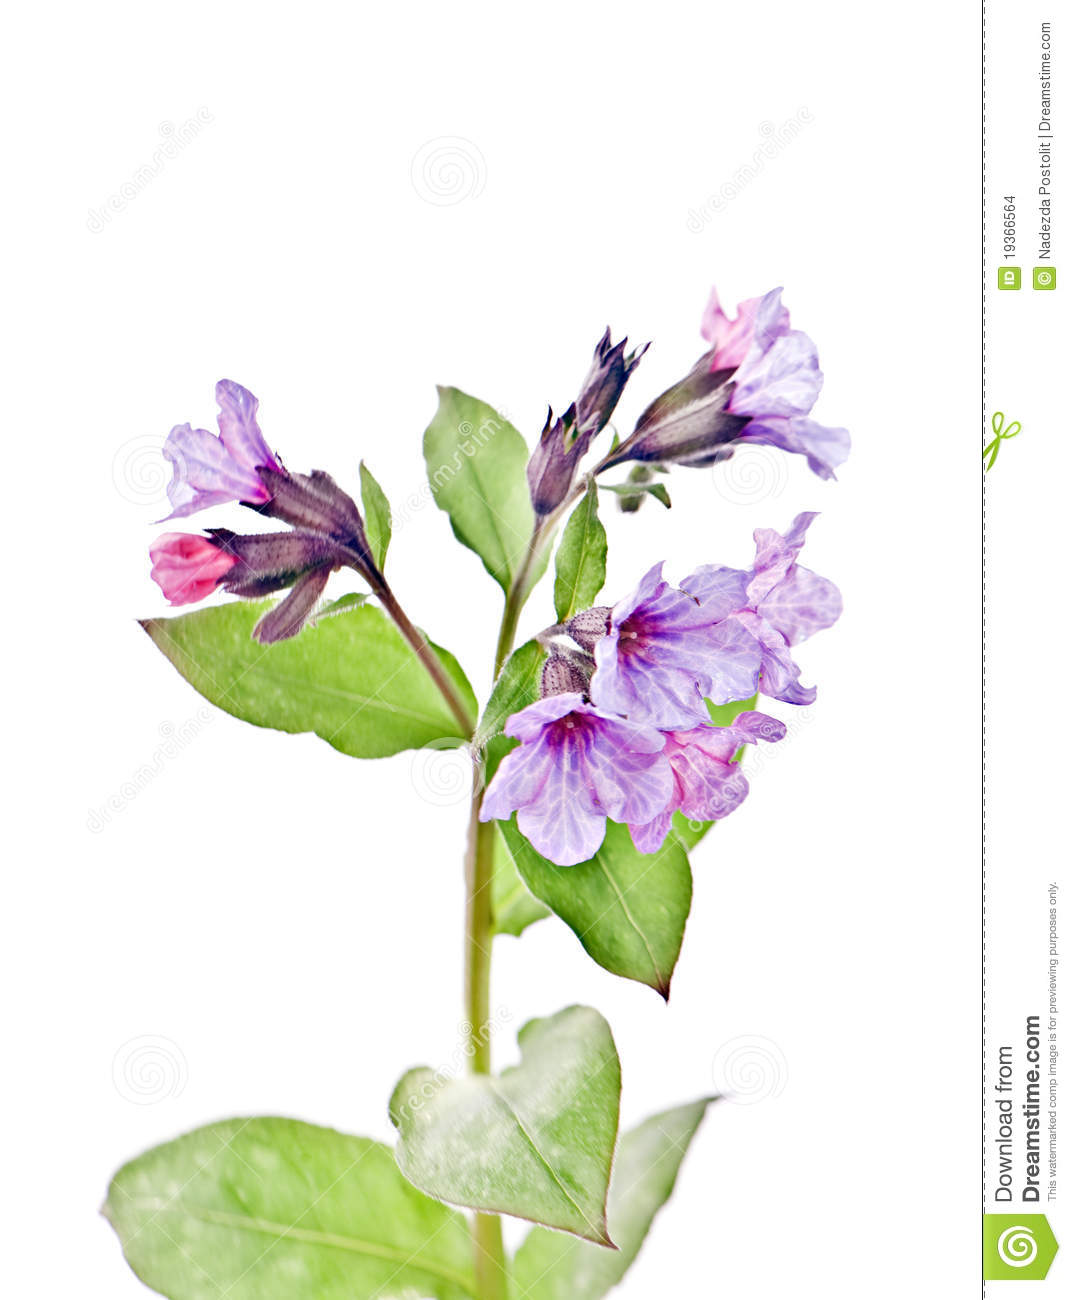 Lungwort, Pulmonaria Officinalis L., Stock Images.